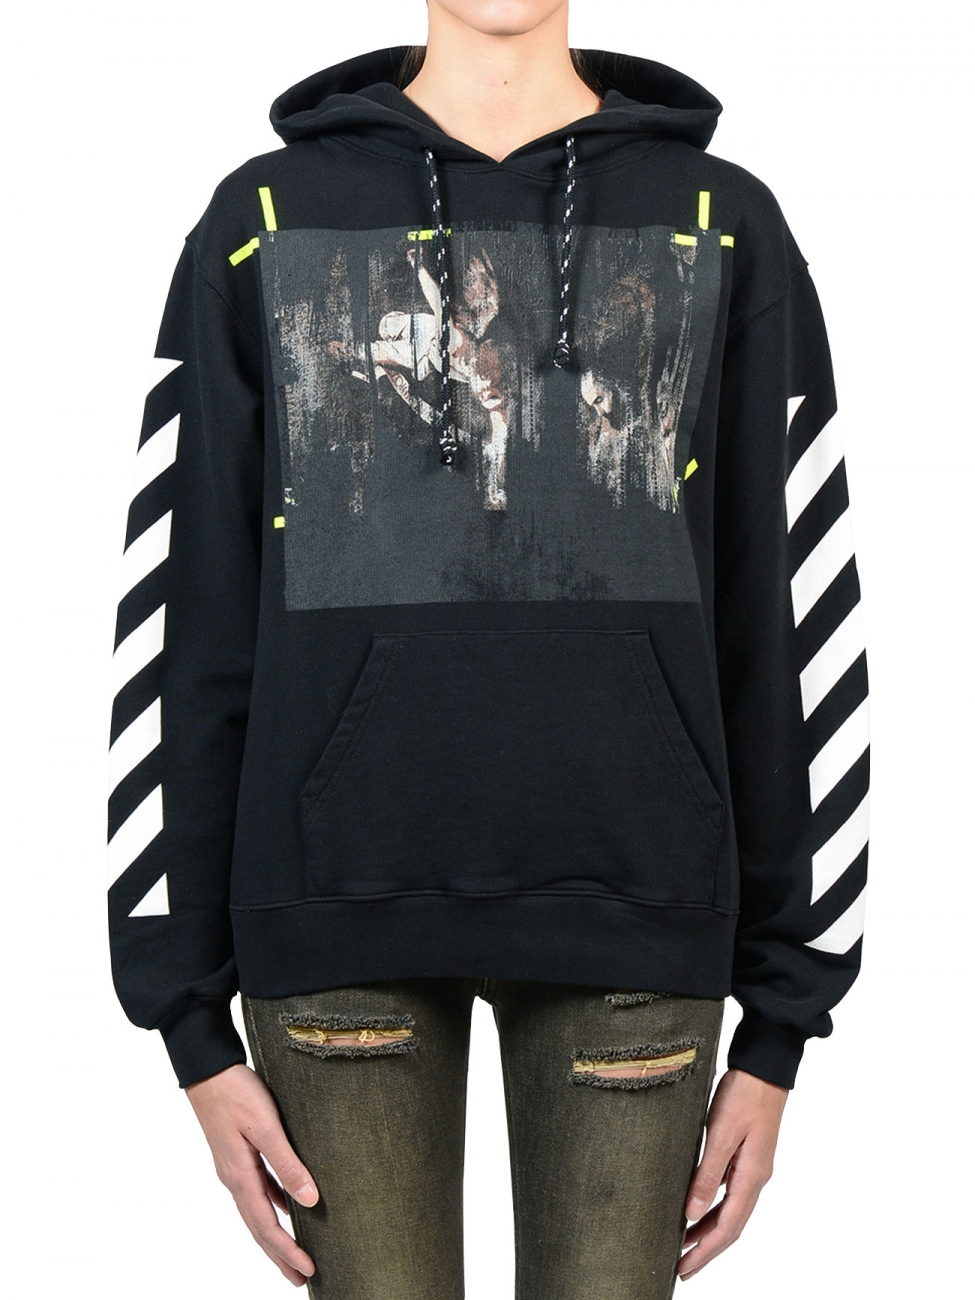 Off White C O Virgil Abloh Caravaggio Black Hoodie In Black Lyst